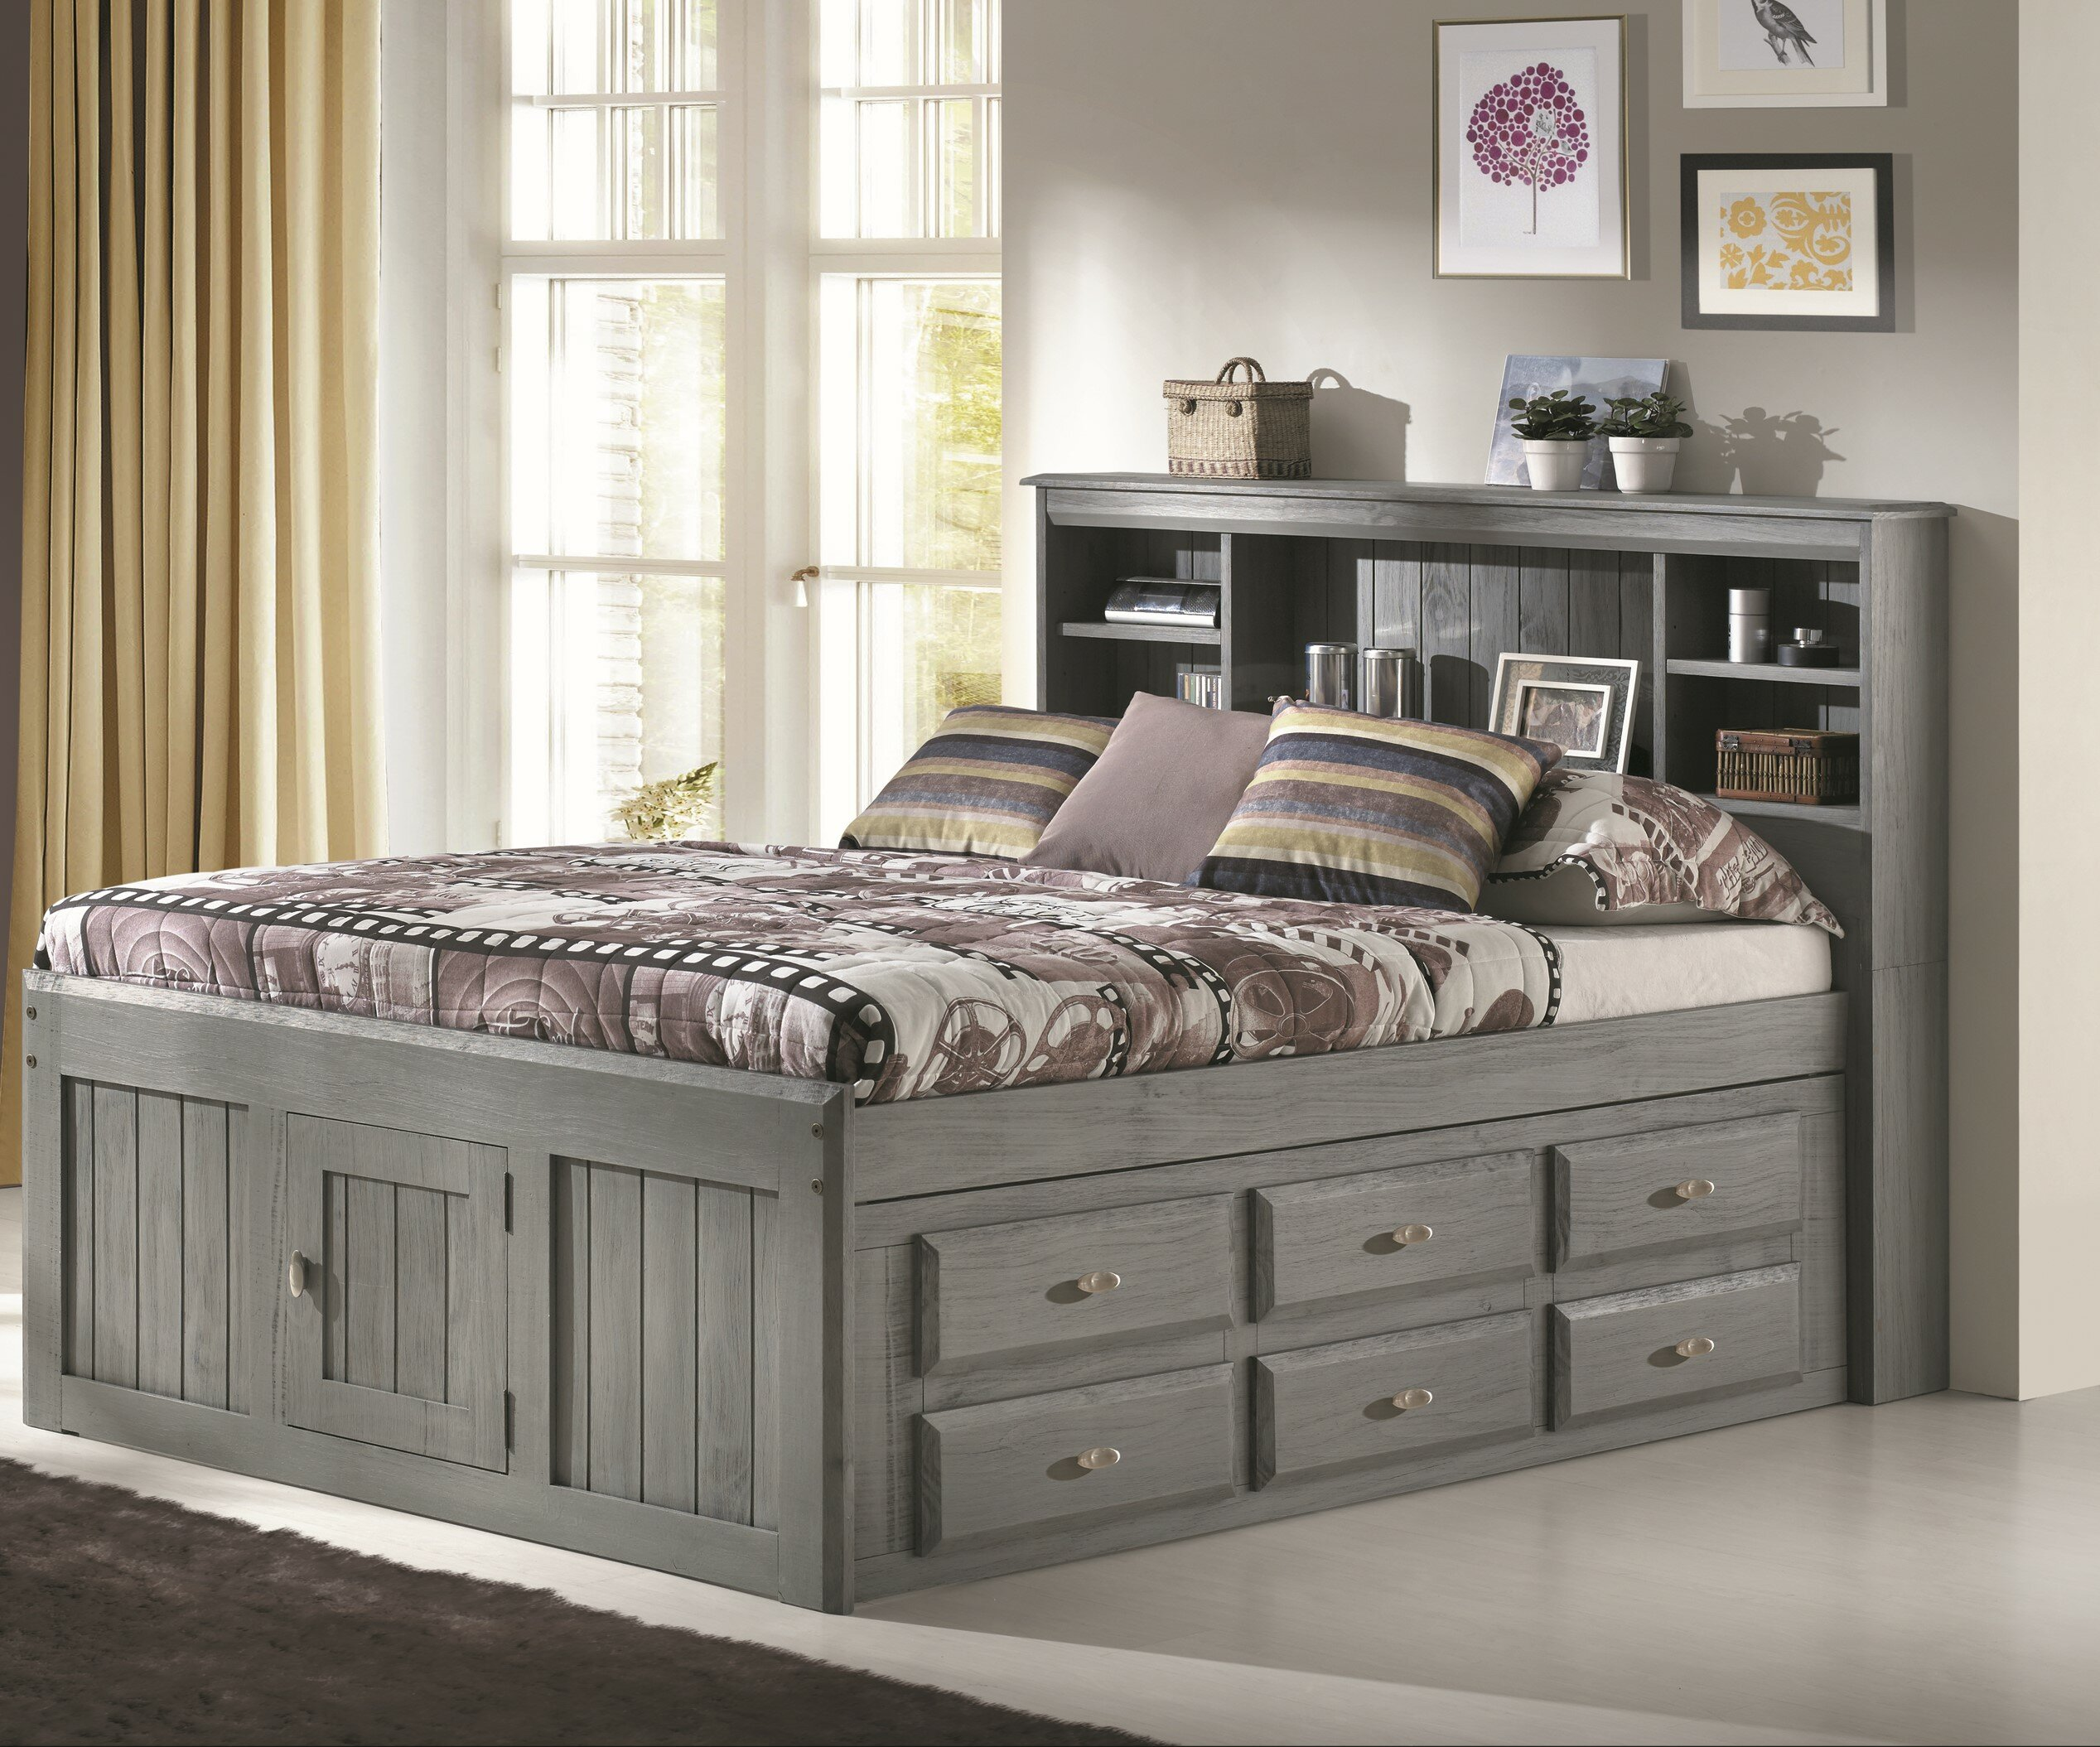 Harriet Bee Jim Full Mate S Captain Bed With Drawers And Bookcase Reviews Wayfair